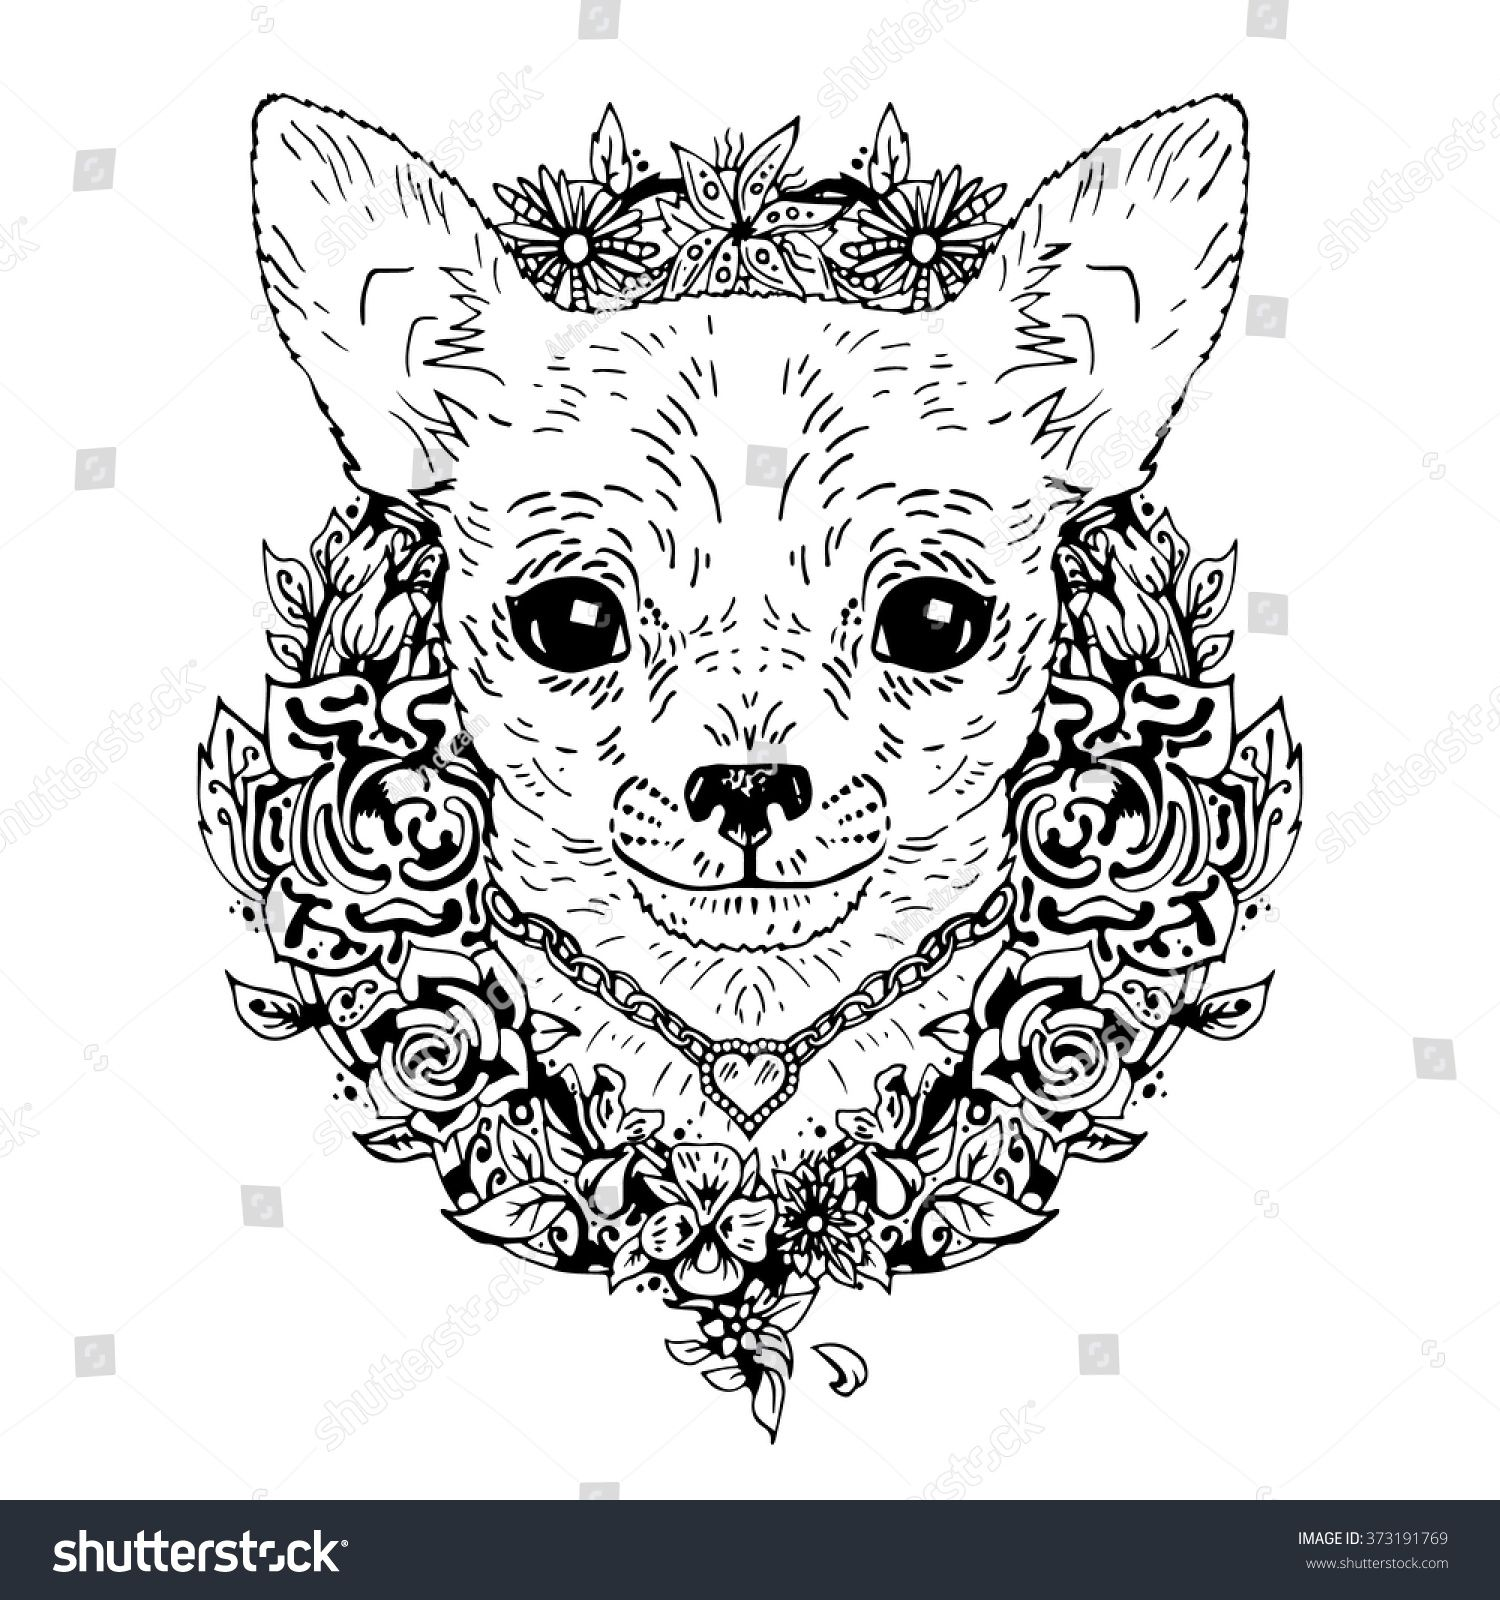 Chihuahua Graphic Dog Abstract Vector Illustration It May Be Used For Design Of A T Shirt Bag Postcard Dog Coloring Page Dog Line Drawing Chihuahua Tattoo [ 1600 x 1500 Pixel ]